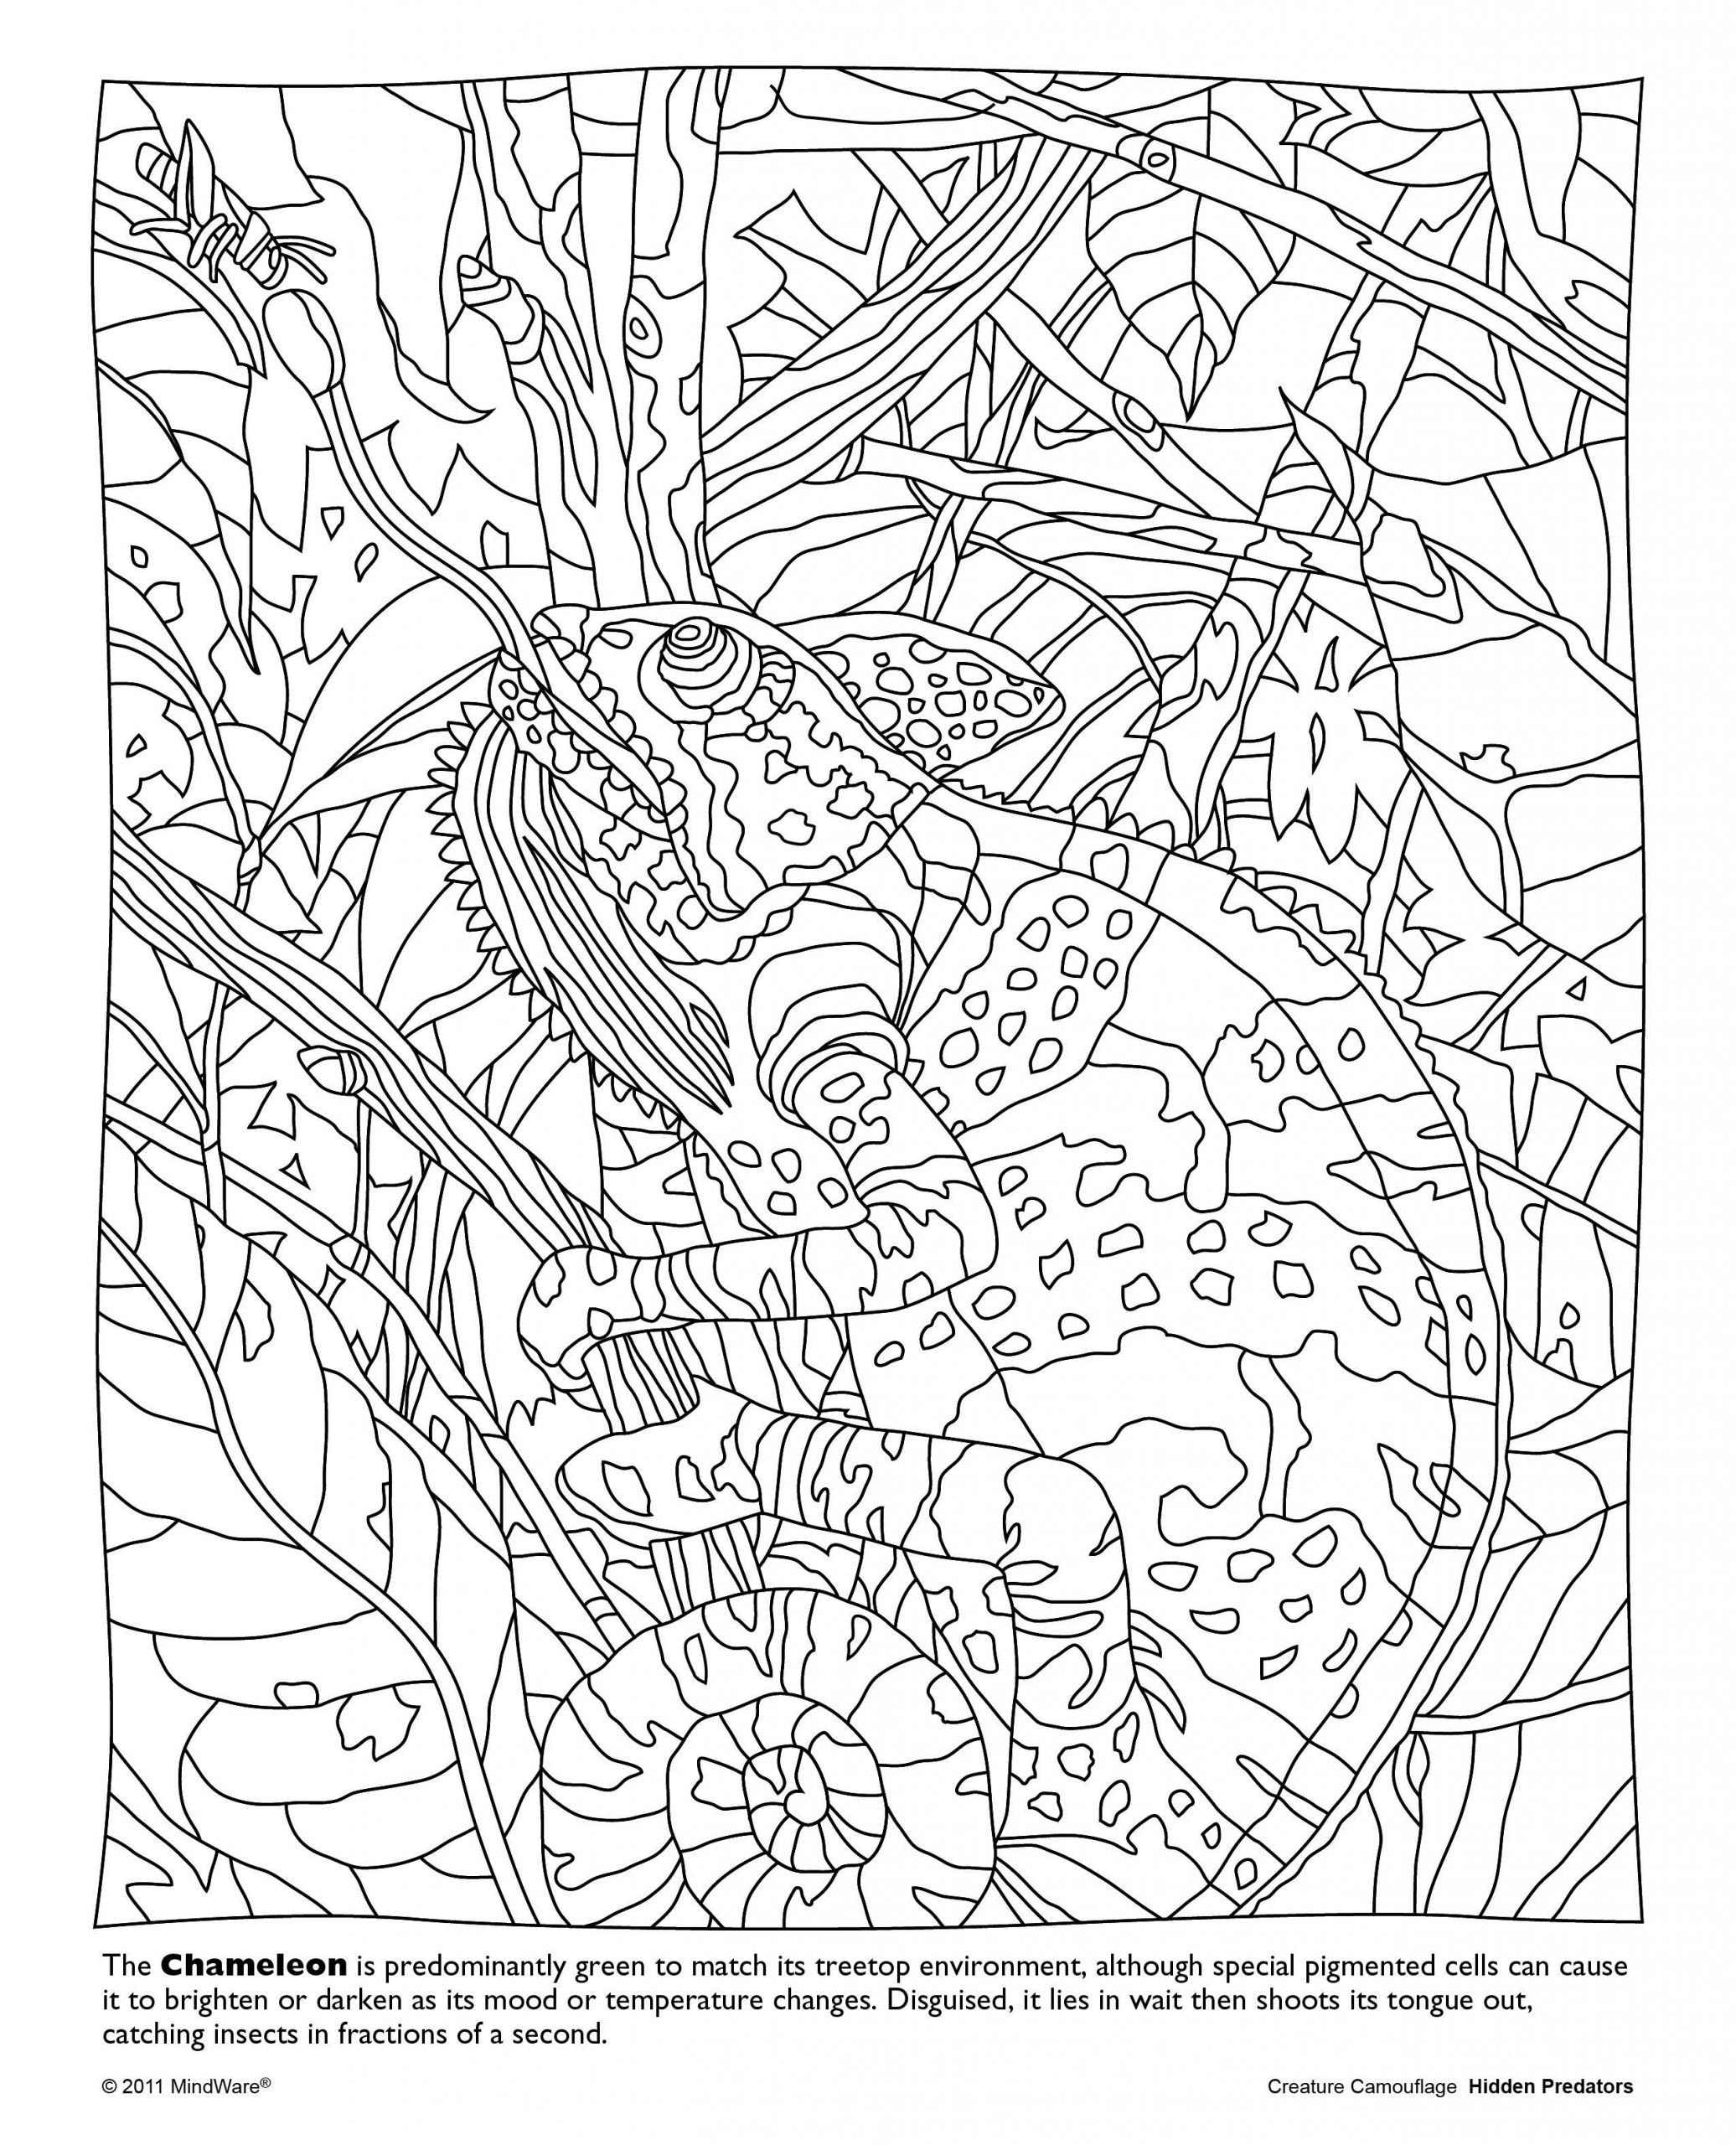 free printable coloring sheets for adults unique hidden predators coloring book mindware of free printable coloring sheets for adults scaled